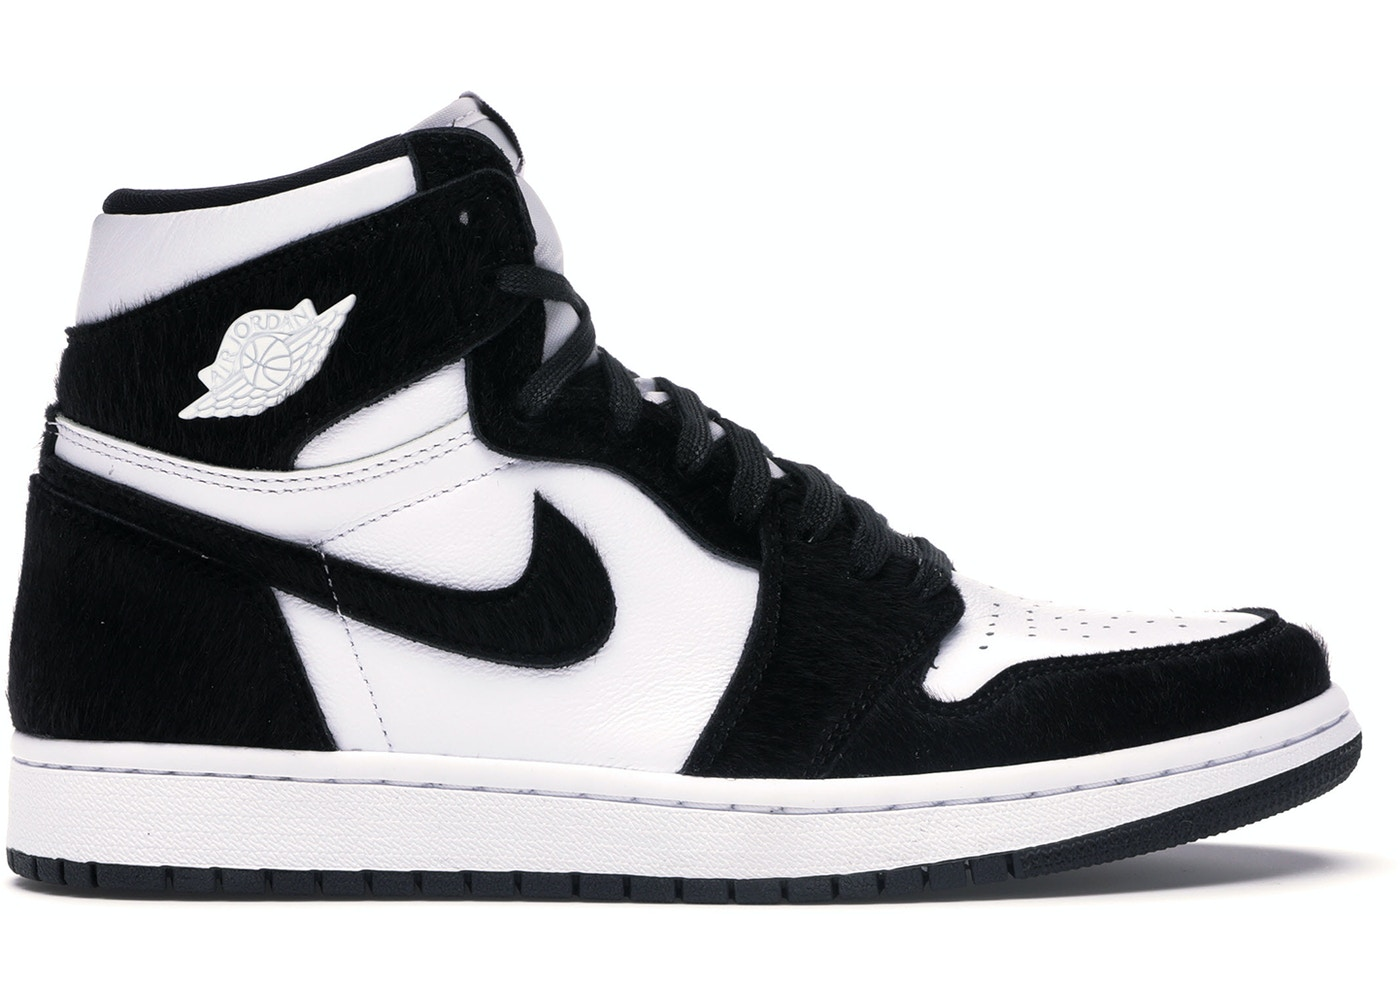 timeless design 819b7 7b6c3 Jordan 1 Retro High Twist (W) - CD0461-007